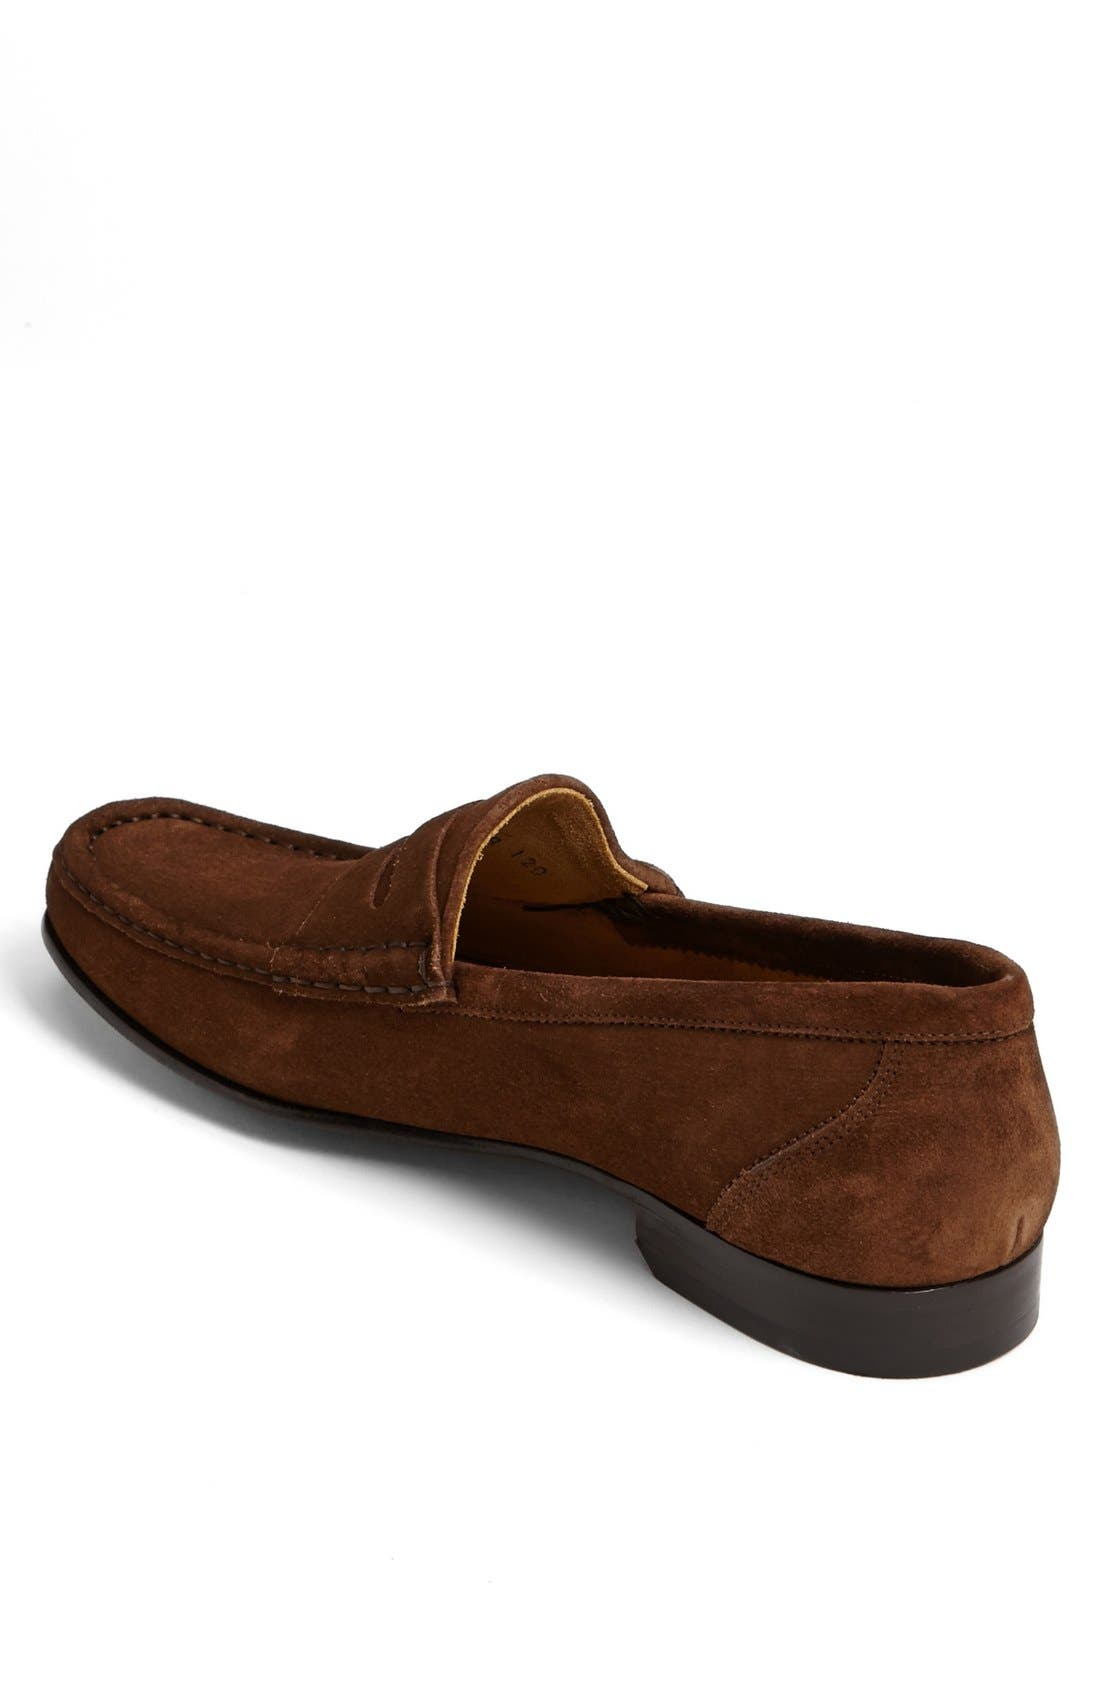 Alternate Image 2  - Donald J Pliner 'Naper' Penny Loafer